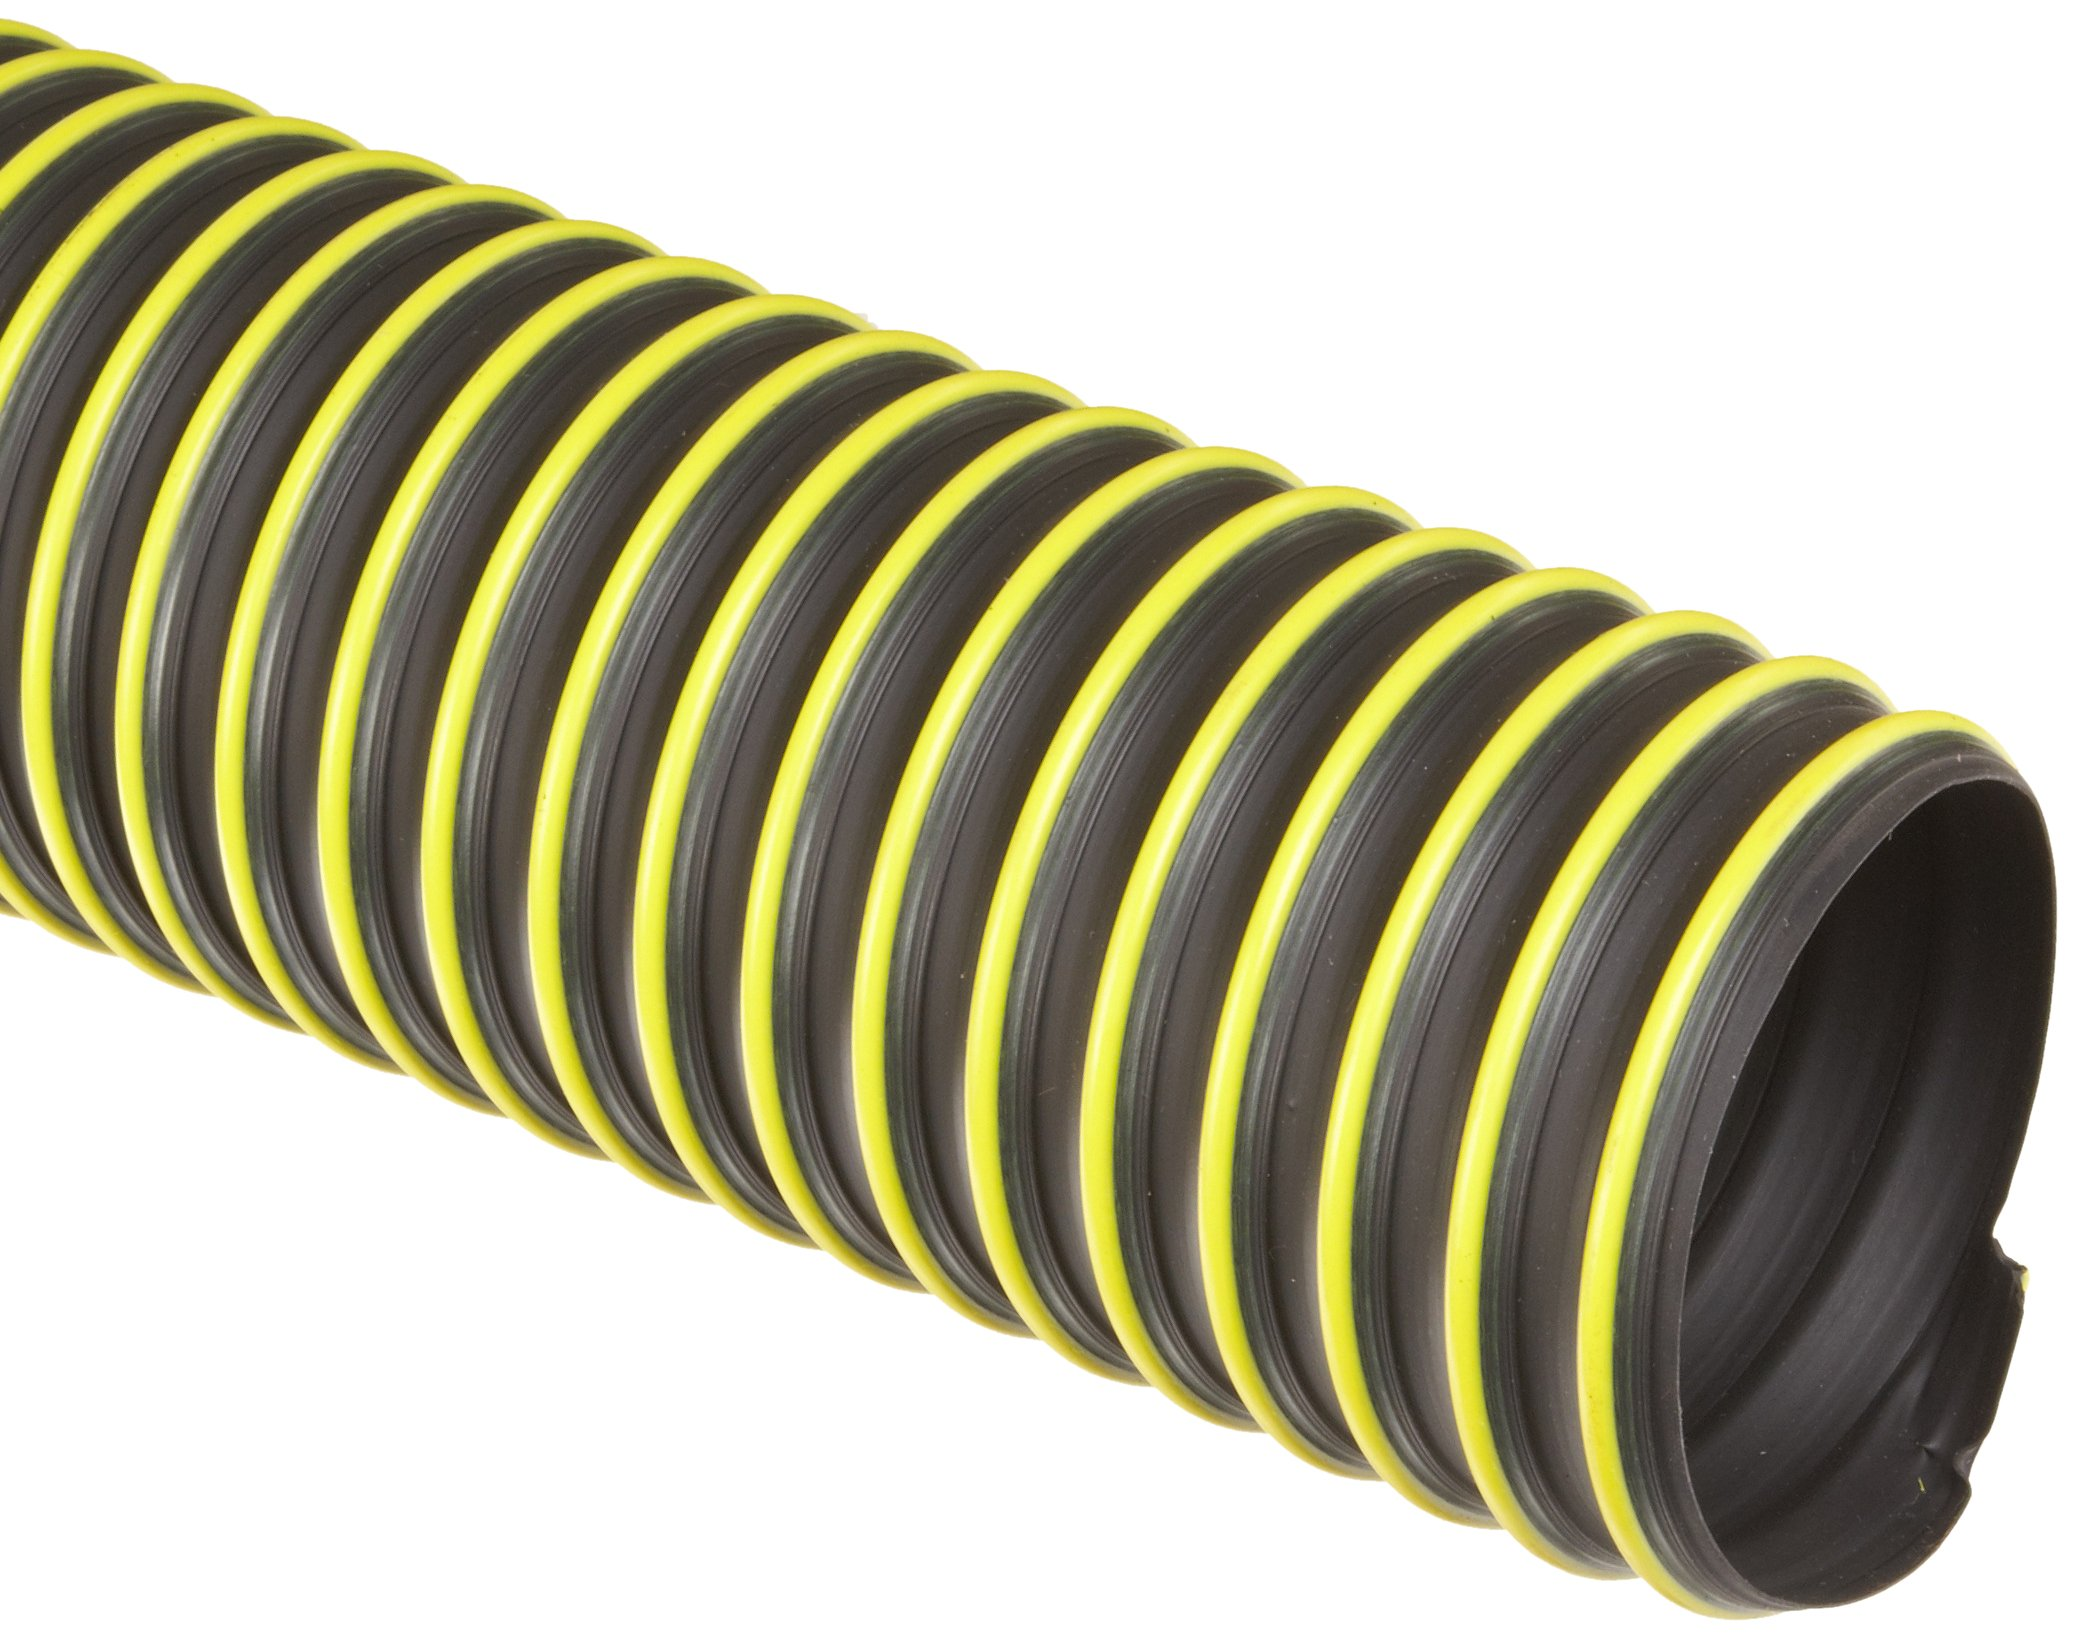 Flexadux T-7W Thermoplastic Rubber Duct Hose, Black, 6'' ID, 0.030'' Wall, 25' Length